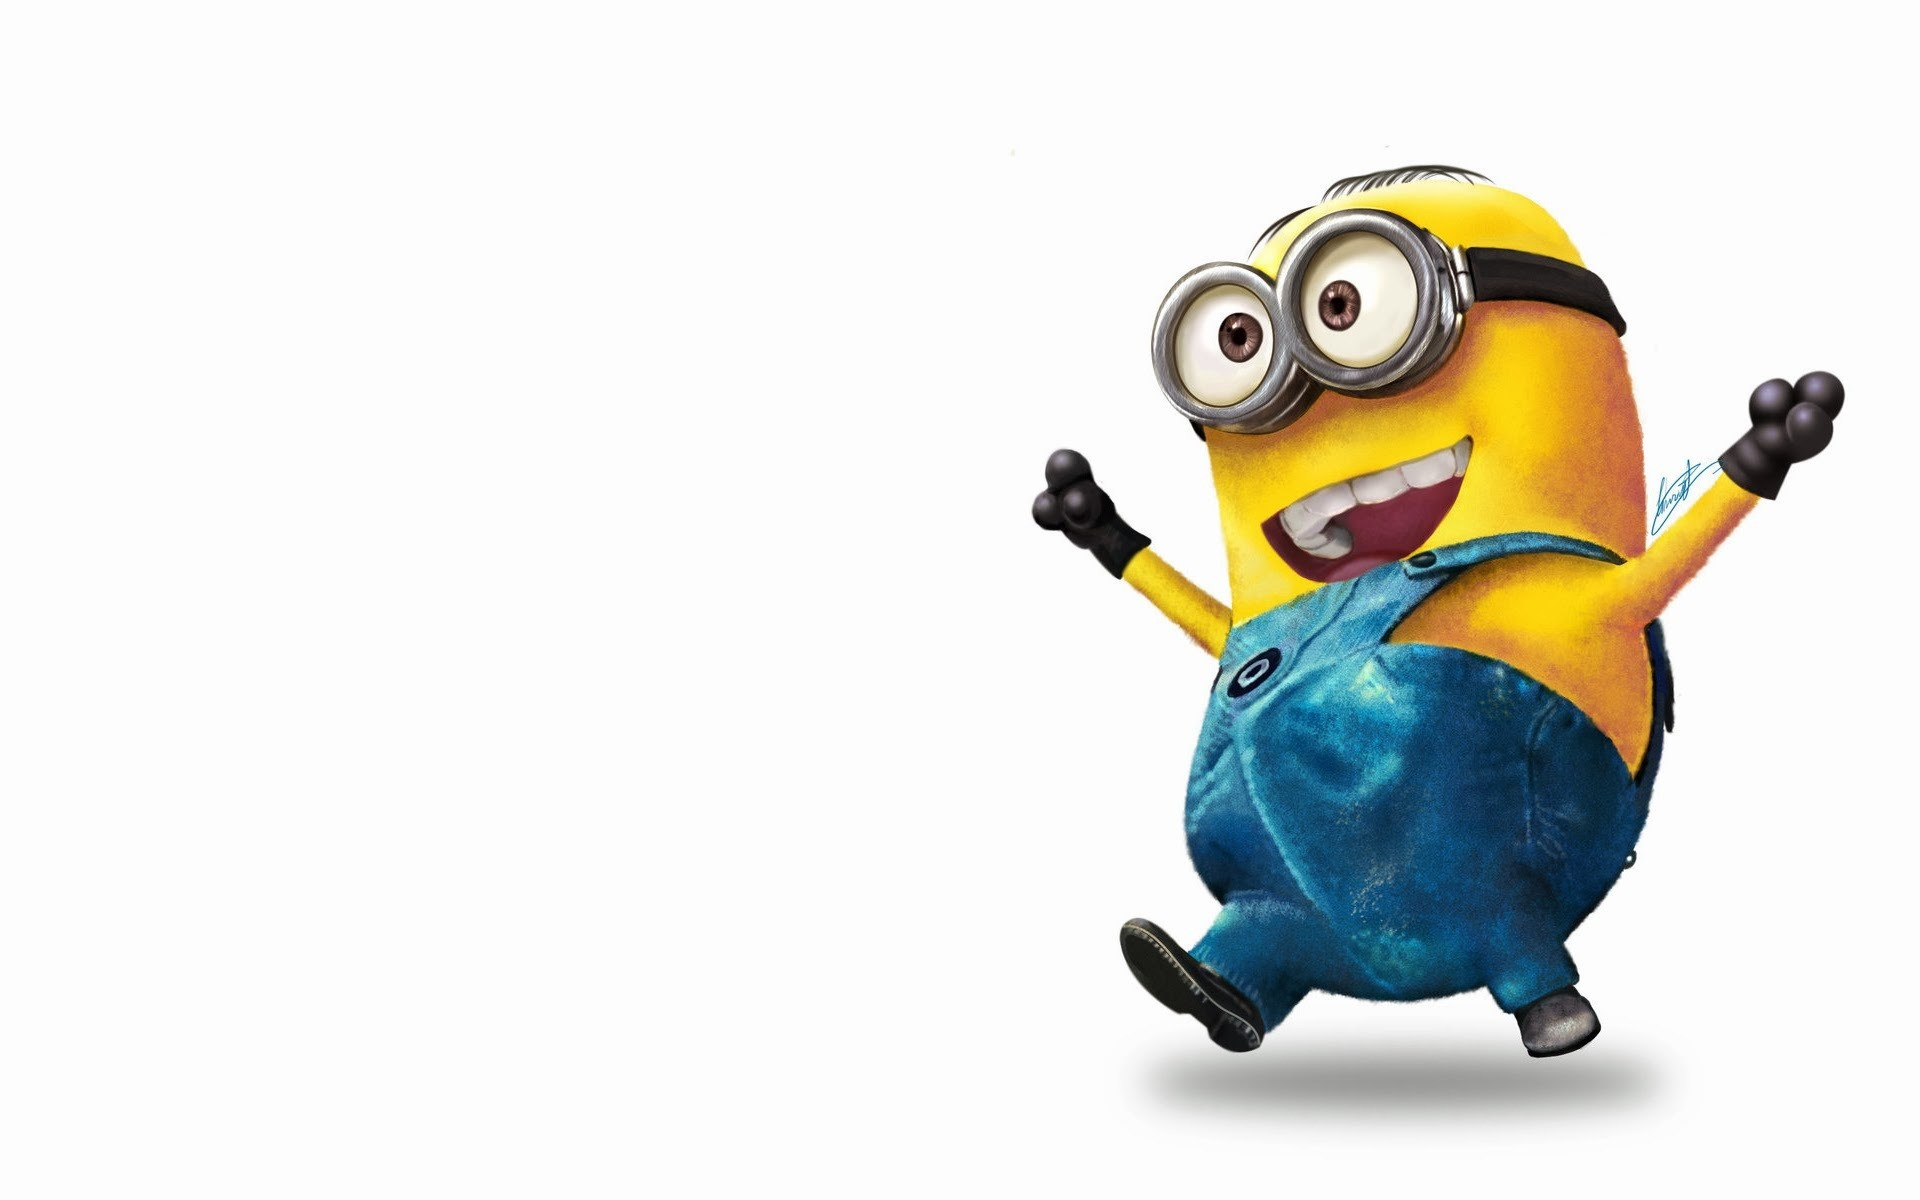 minions easter wallpaper (80+ images)